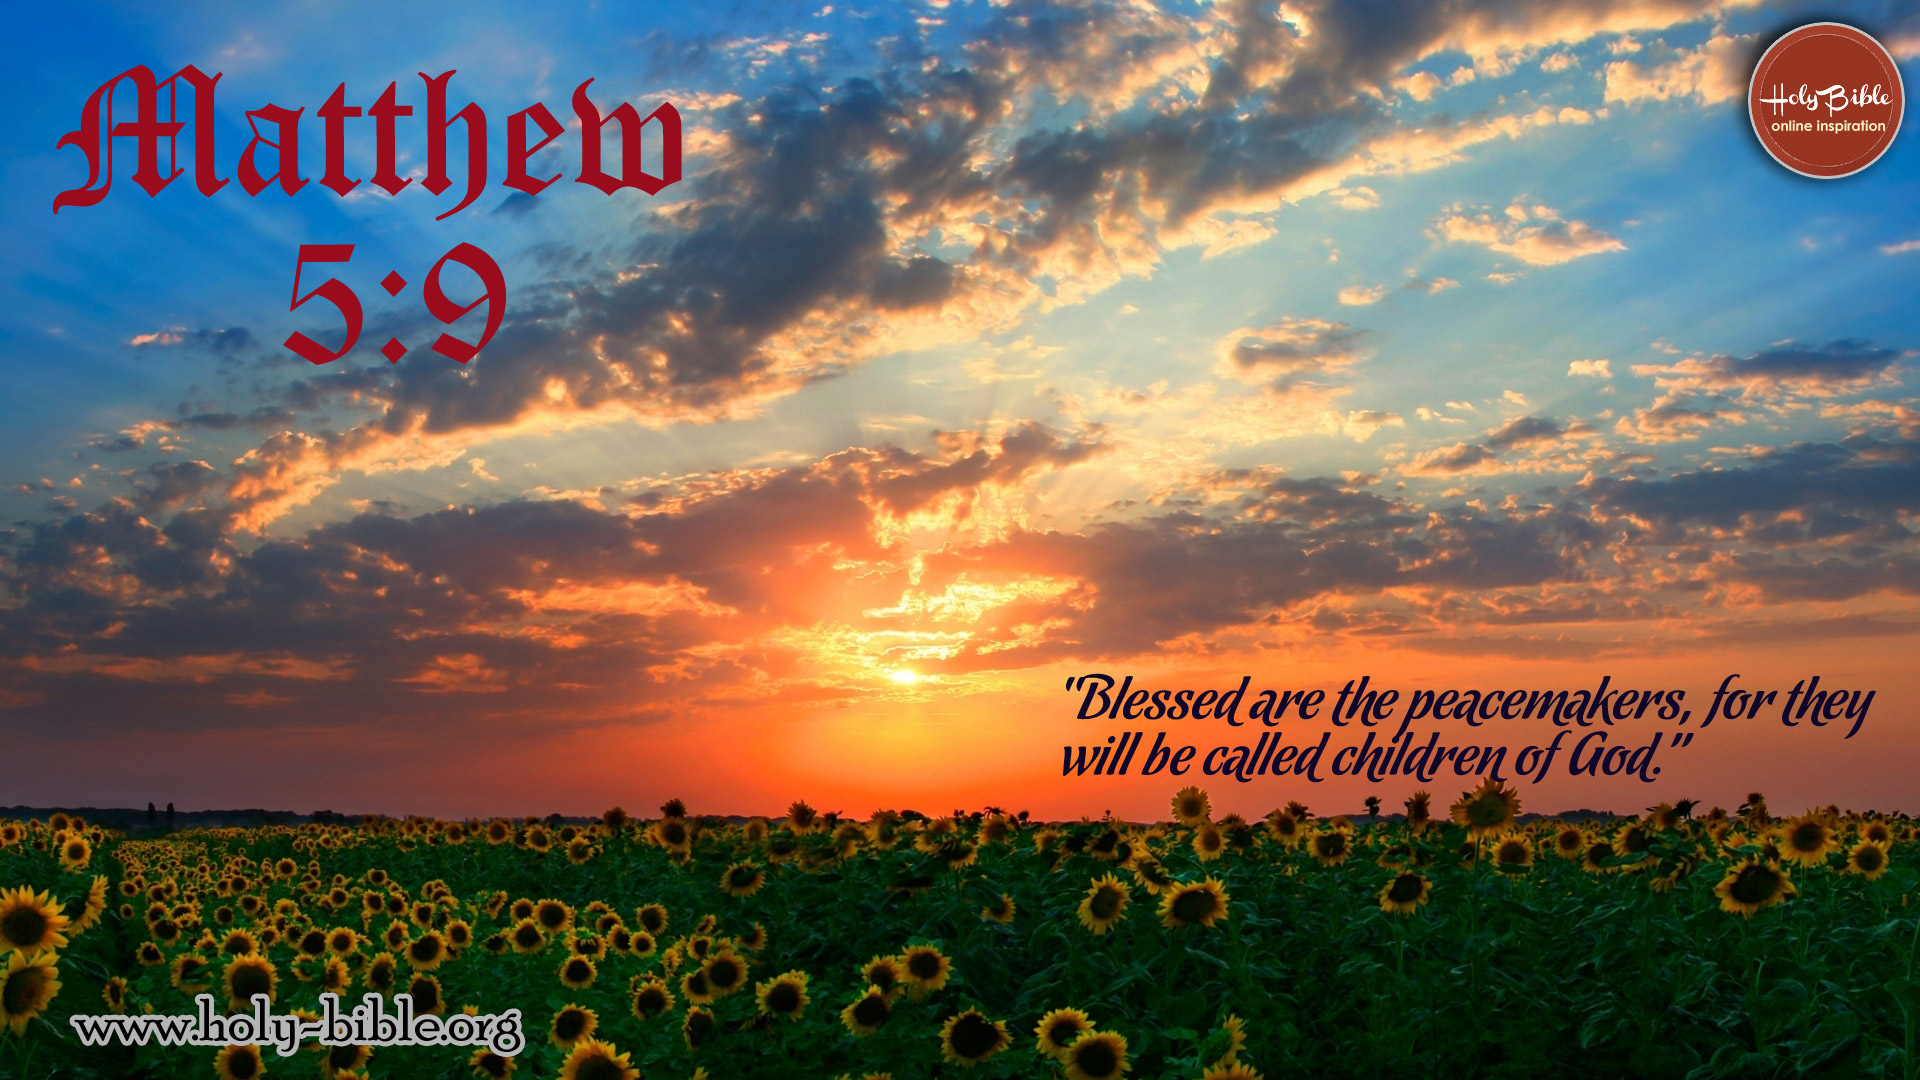 Bible Verse of the day - Matthew 5:9